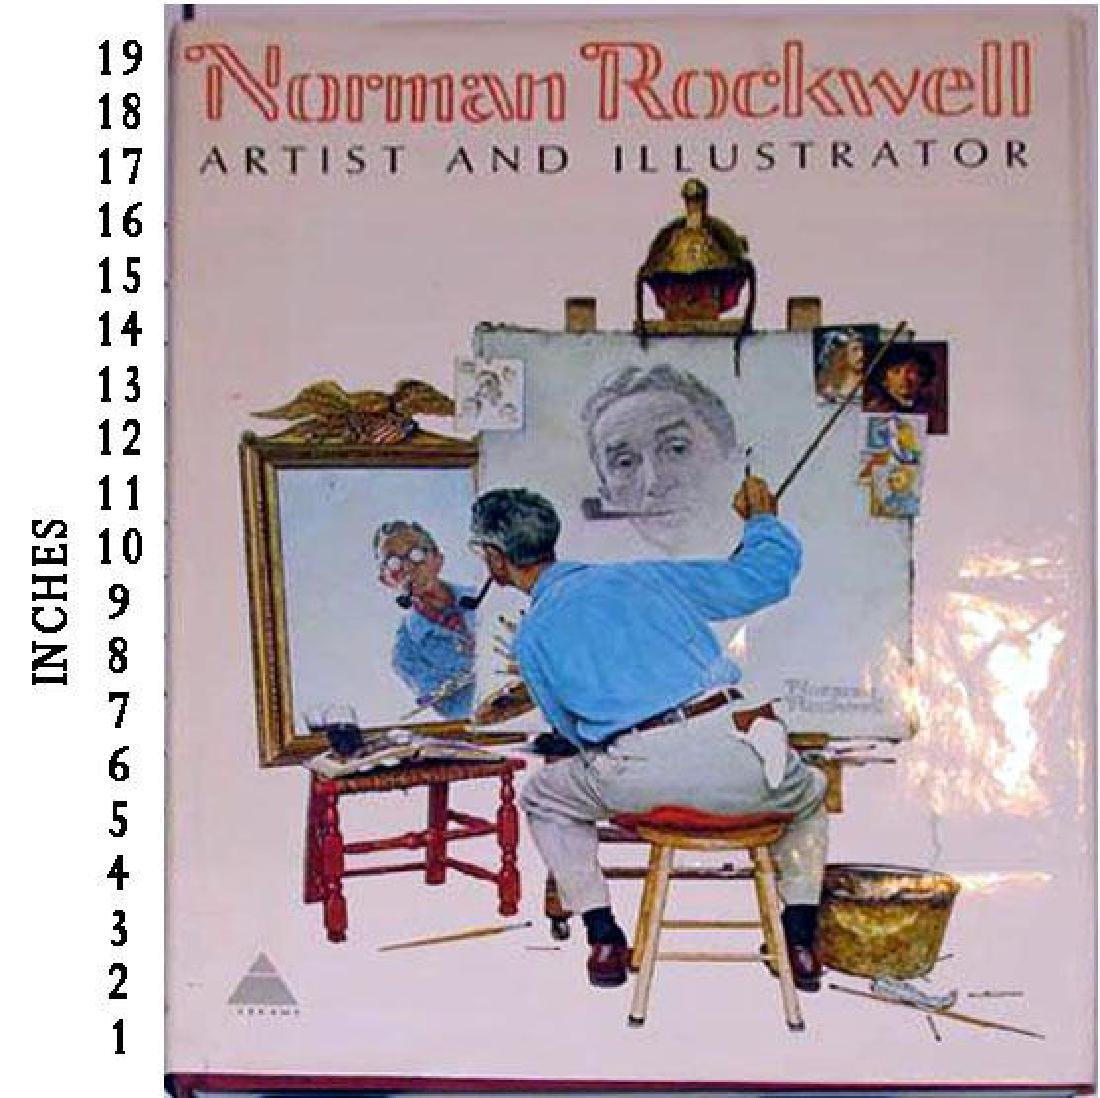 Dealer Liquidating Art Books Norman Rockwell Artist And